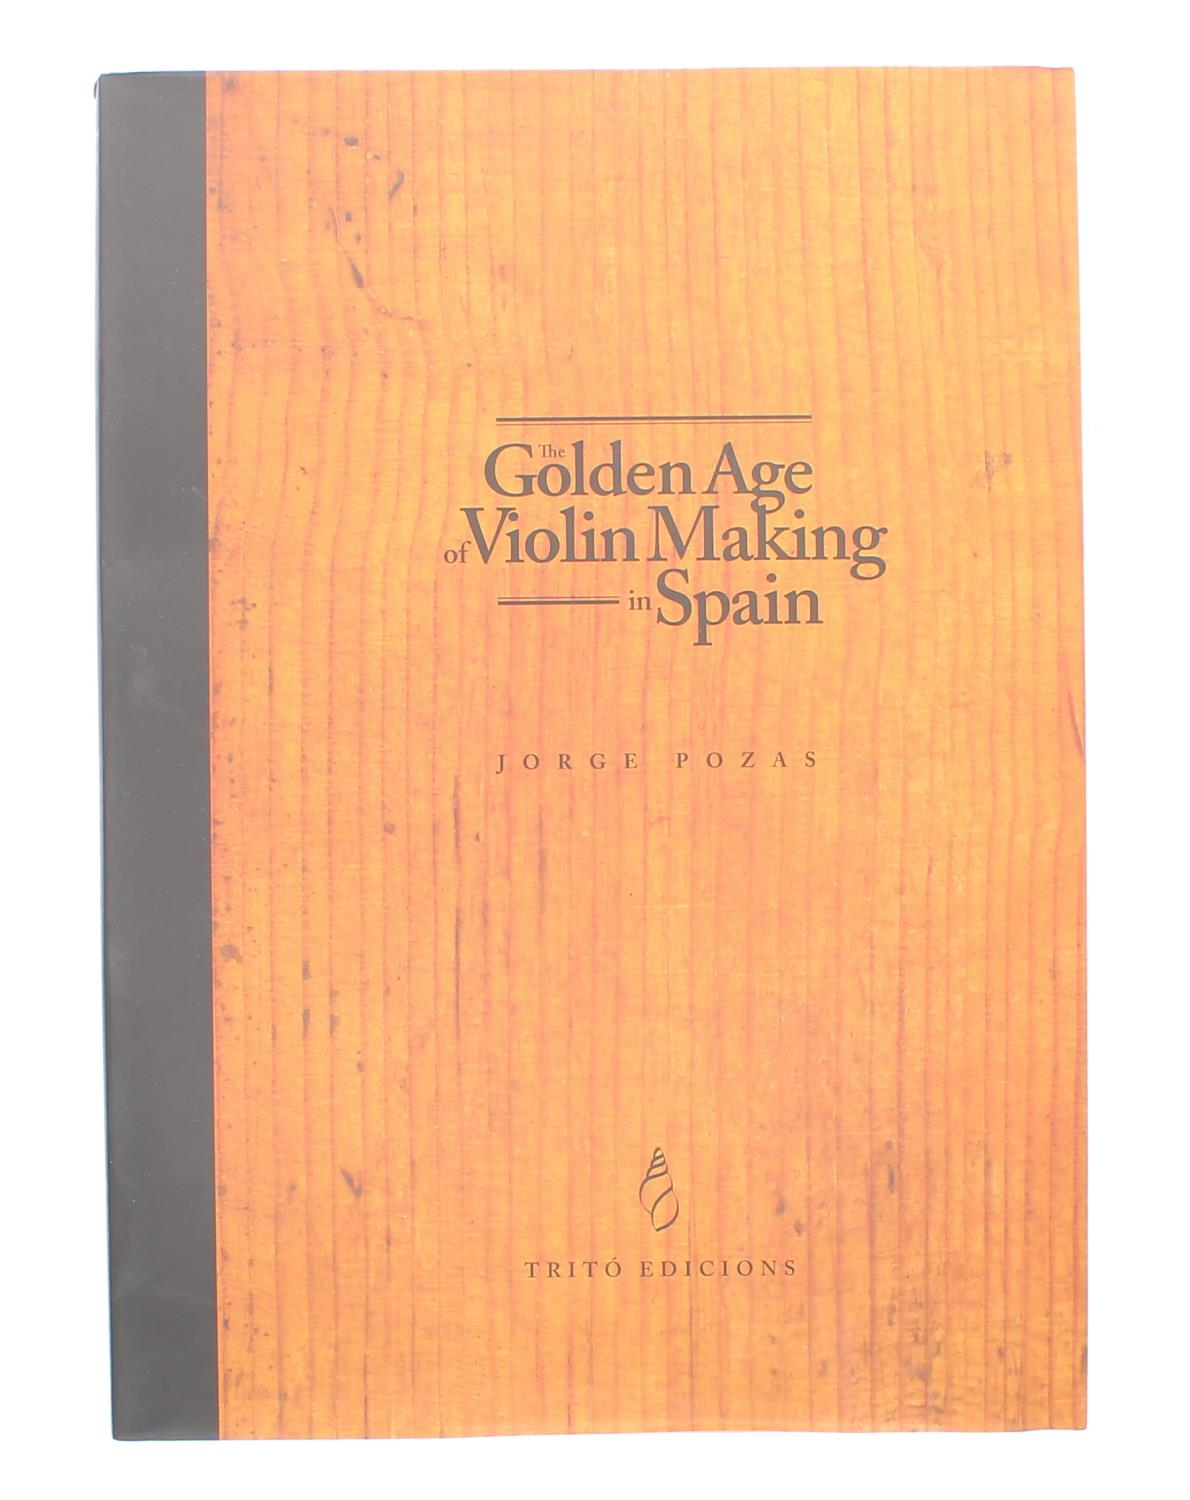 George Pozas - The Golden Age of Violin Making in Spain, copy number 388-R/1000